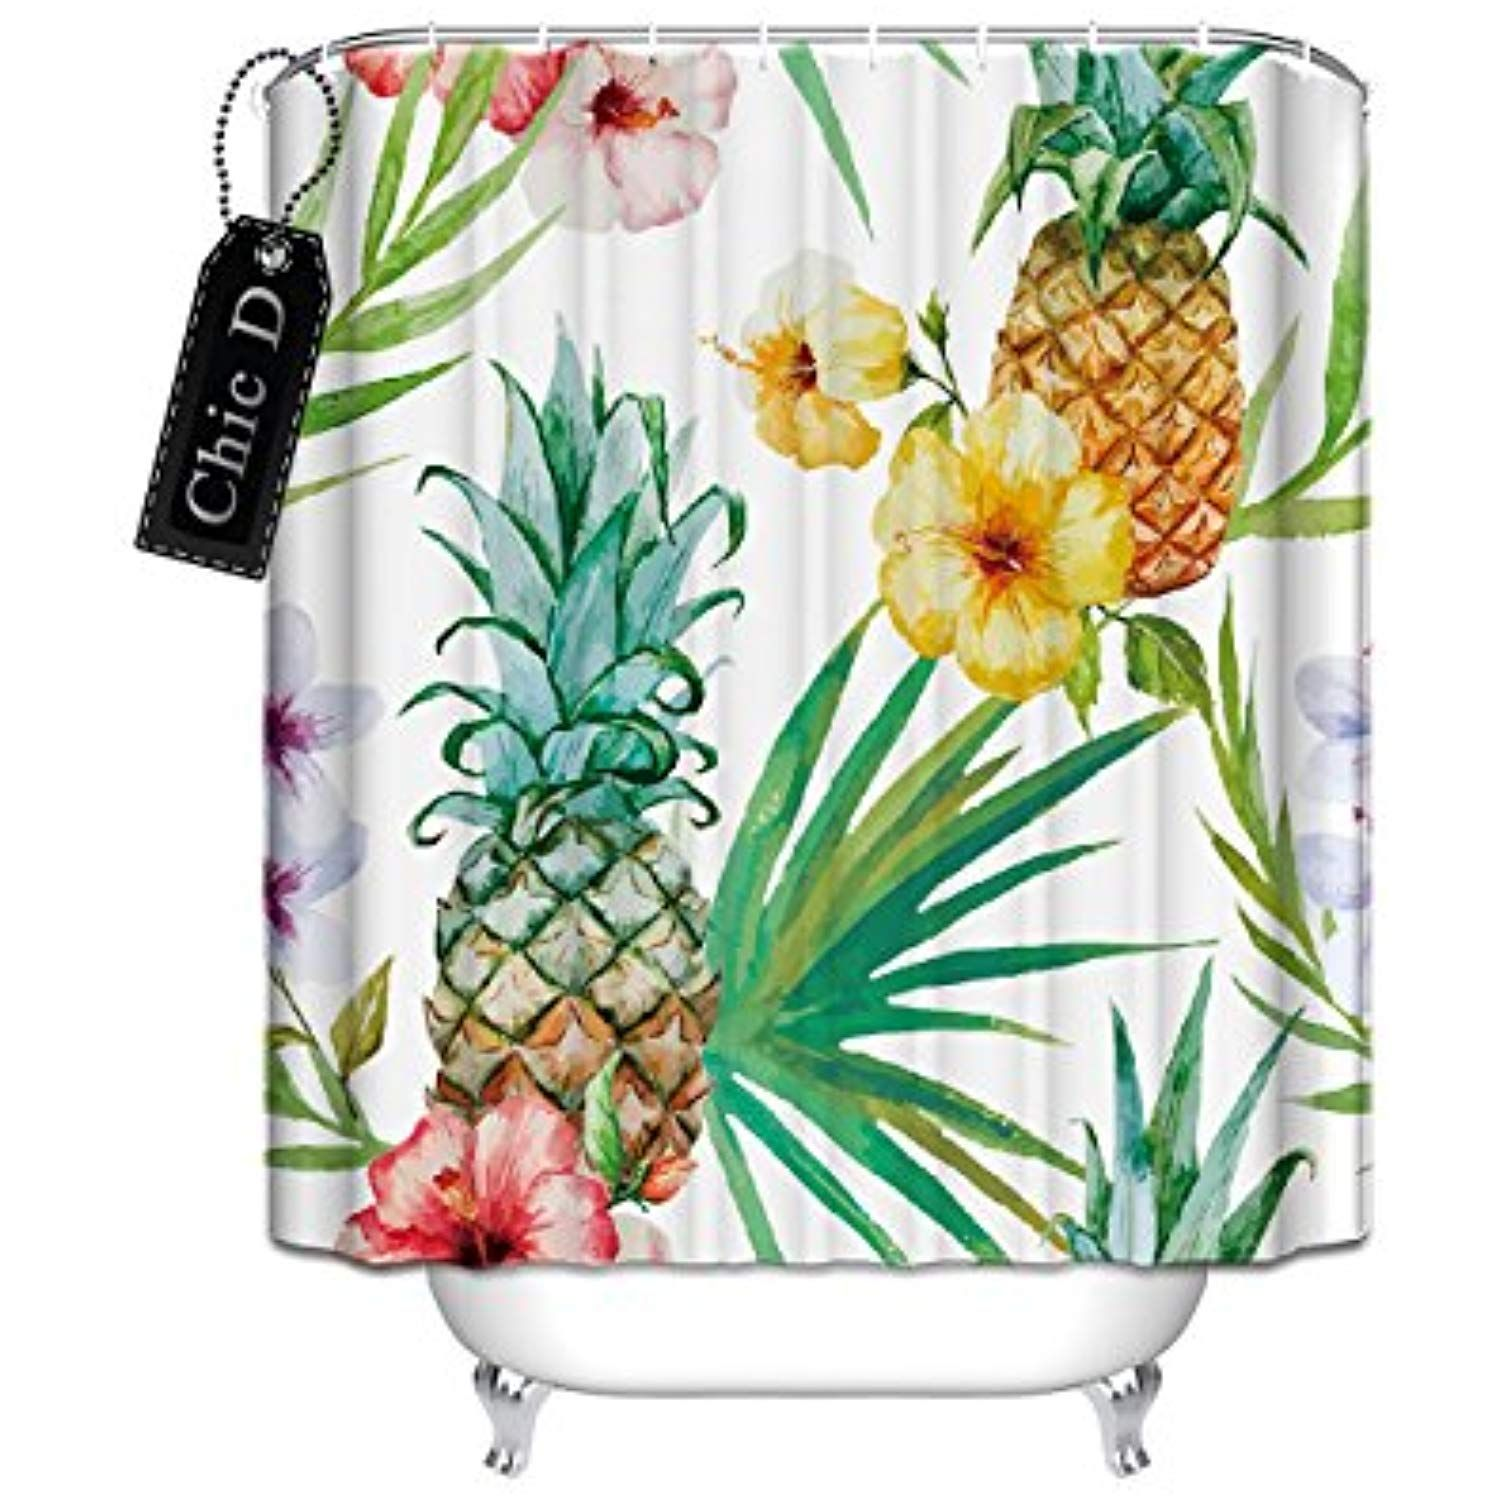 Tropical Plants Flowers Pineapple Shower Curtain 36 X 72 Inch Long